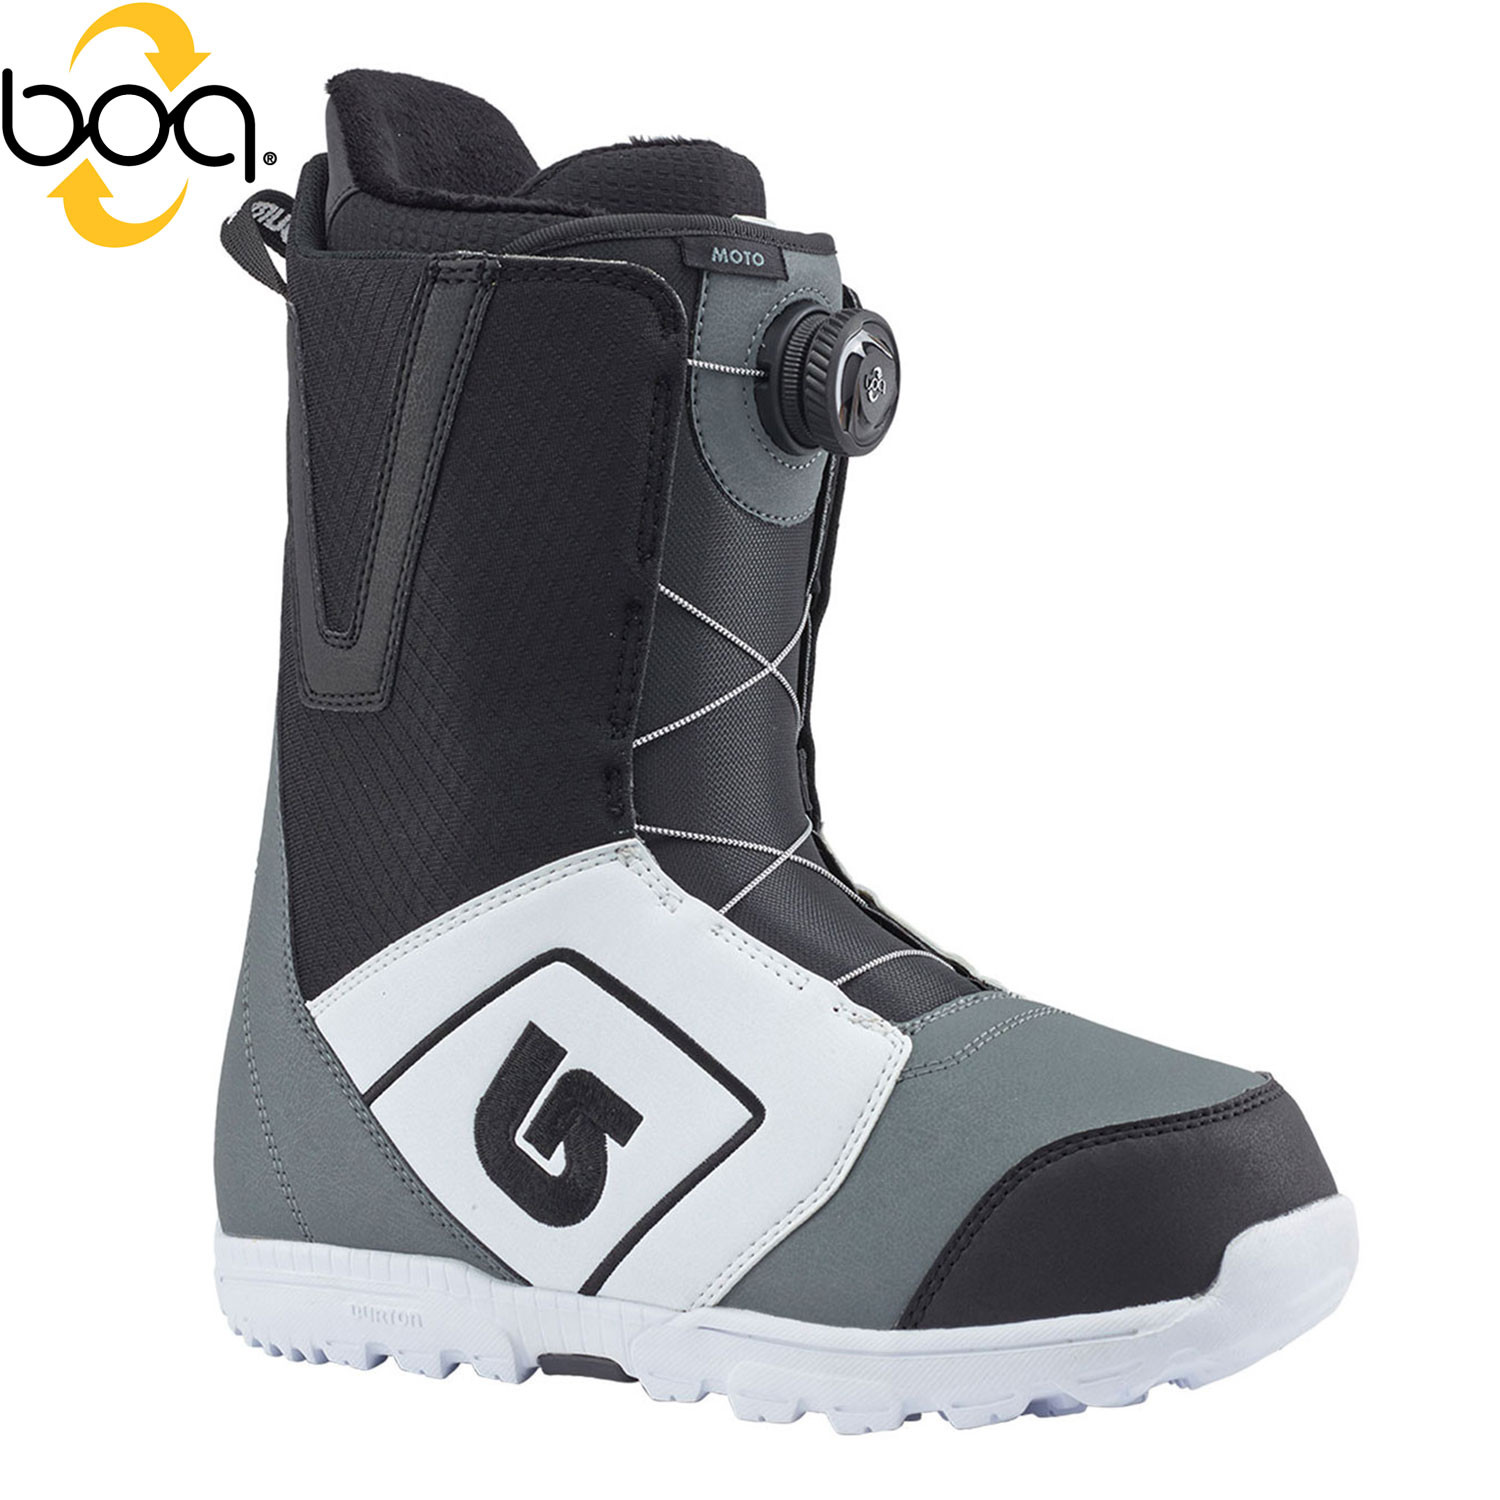 Boty Burton Moto Boa white/black/grey